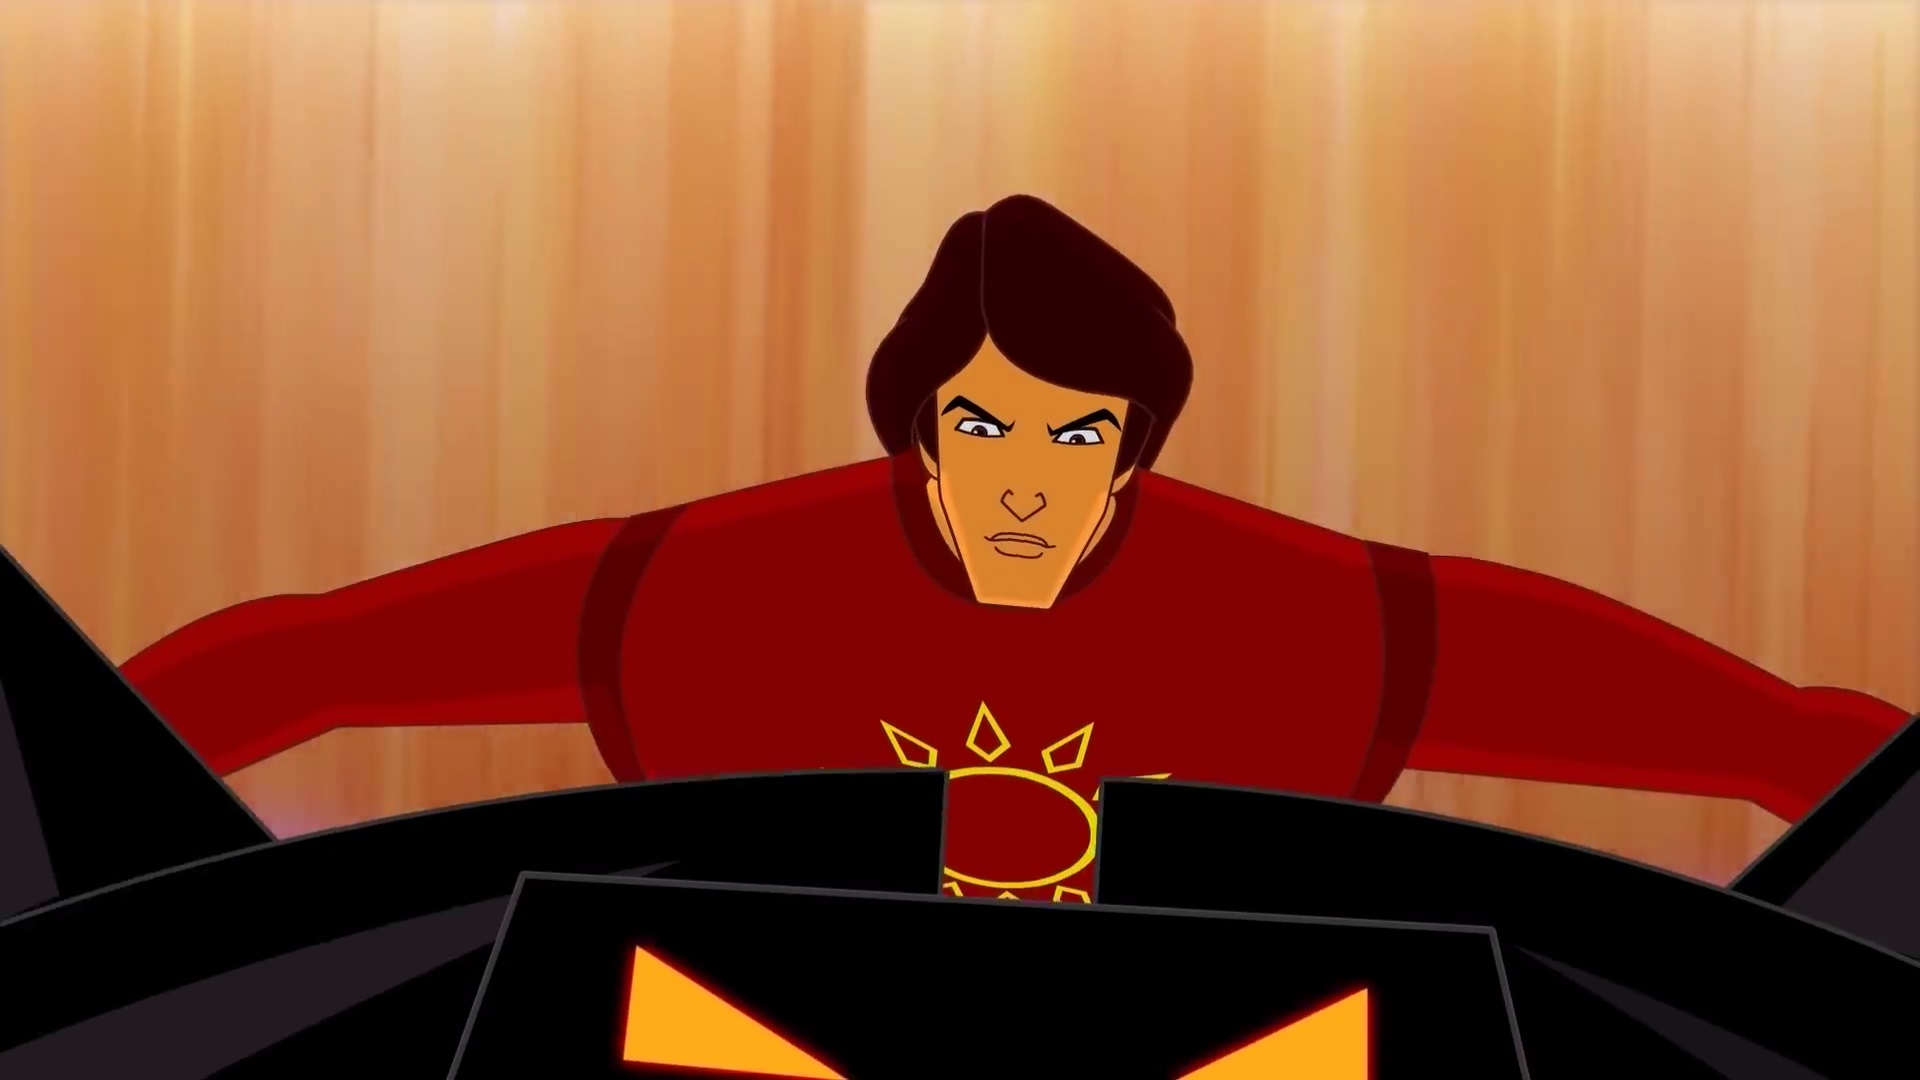 Reliance Animation — Shaktimaan Animated Preview Image